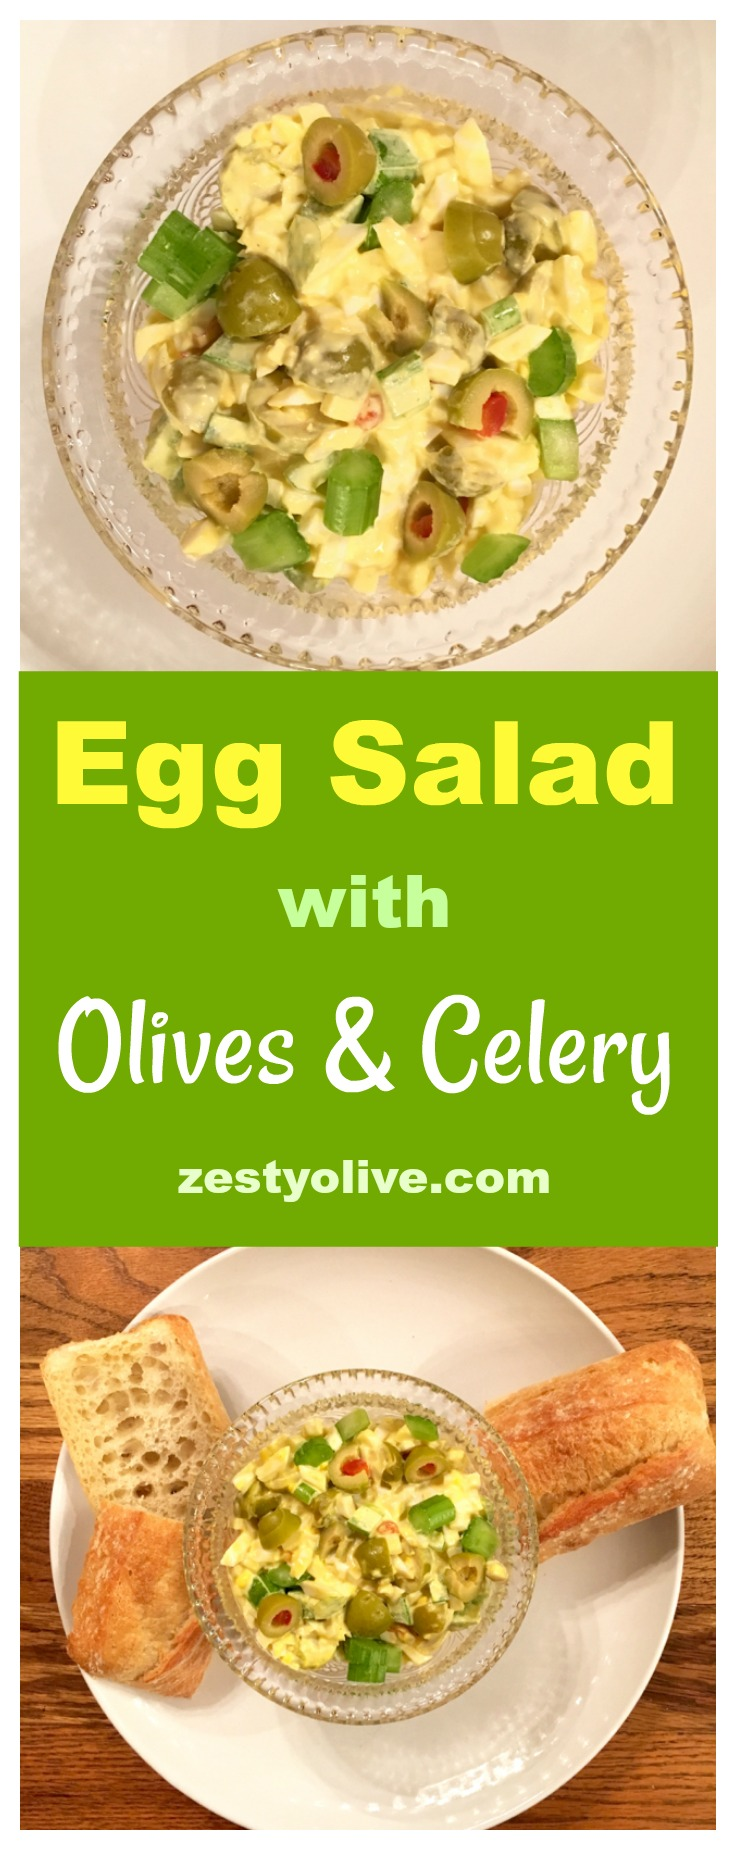 Egg Salad with Olives and Celery